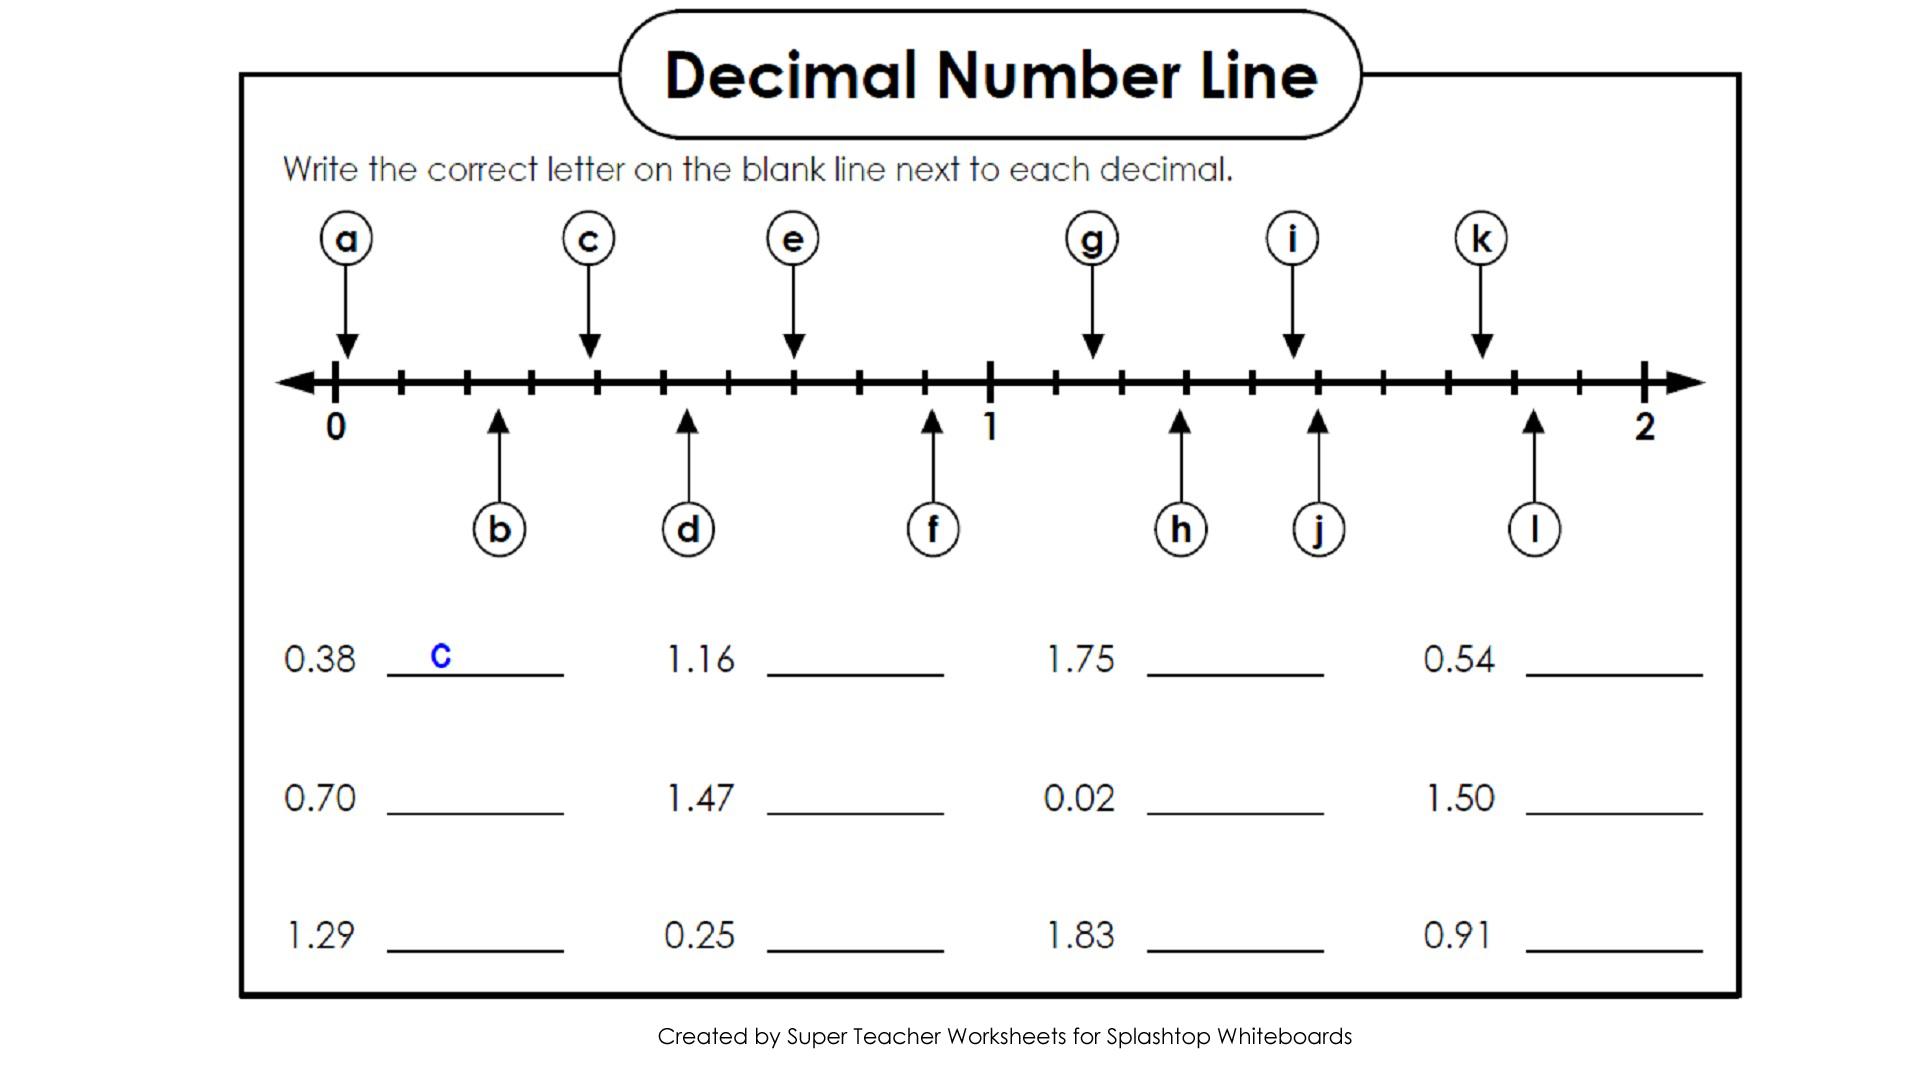 worksheet Mixed Numbers On A Number Line Worksheet decimals on a numberline lessons tes teach images for blank number line fractions